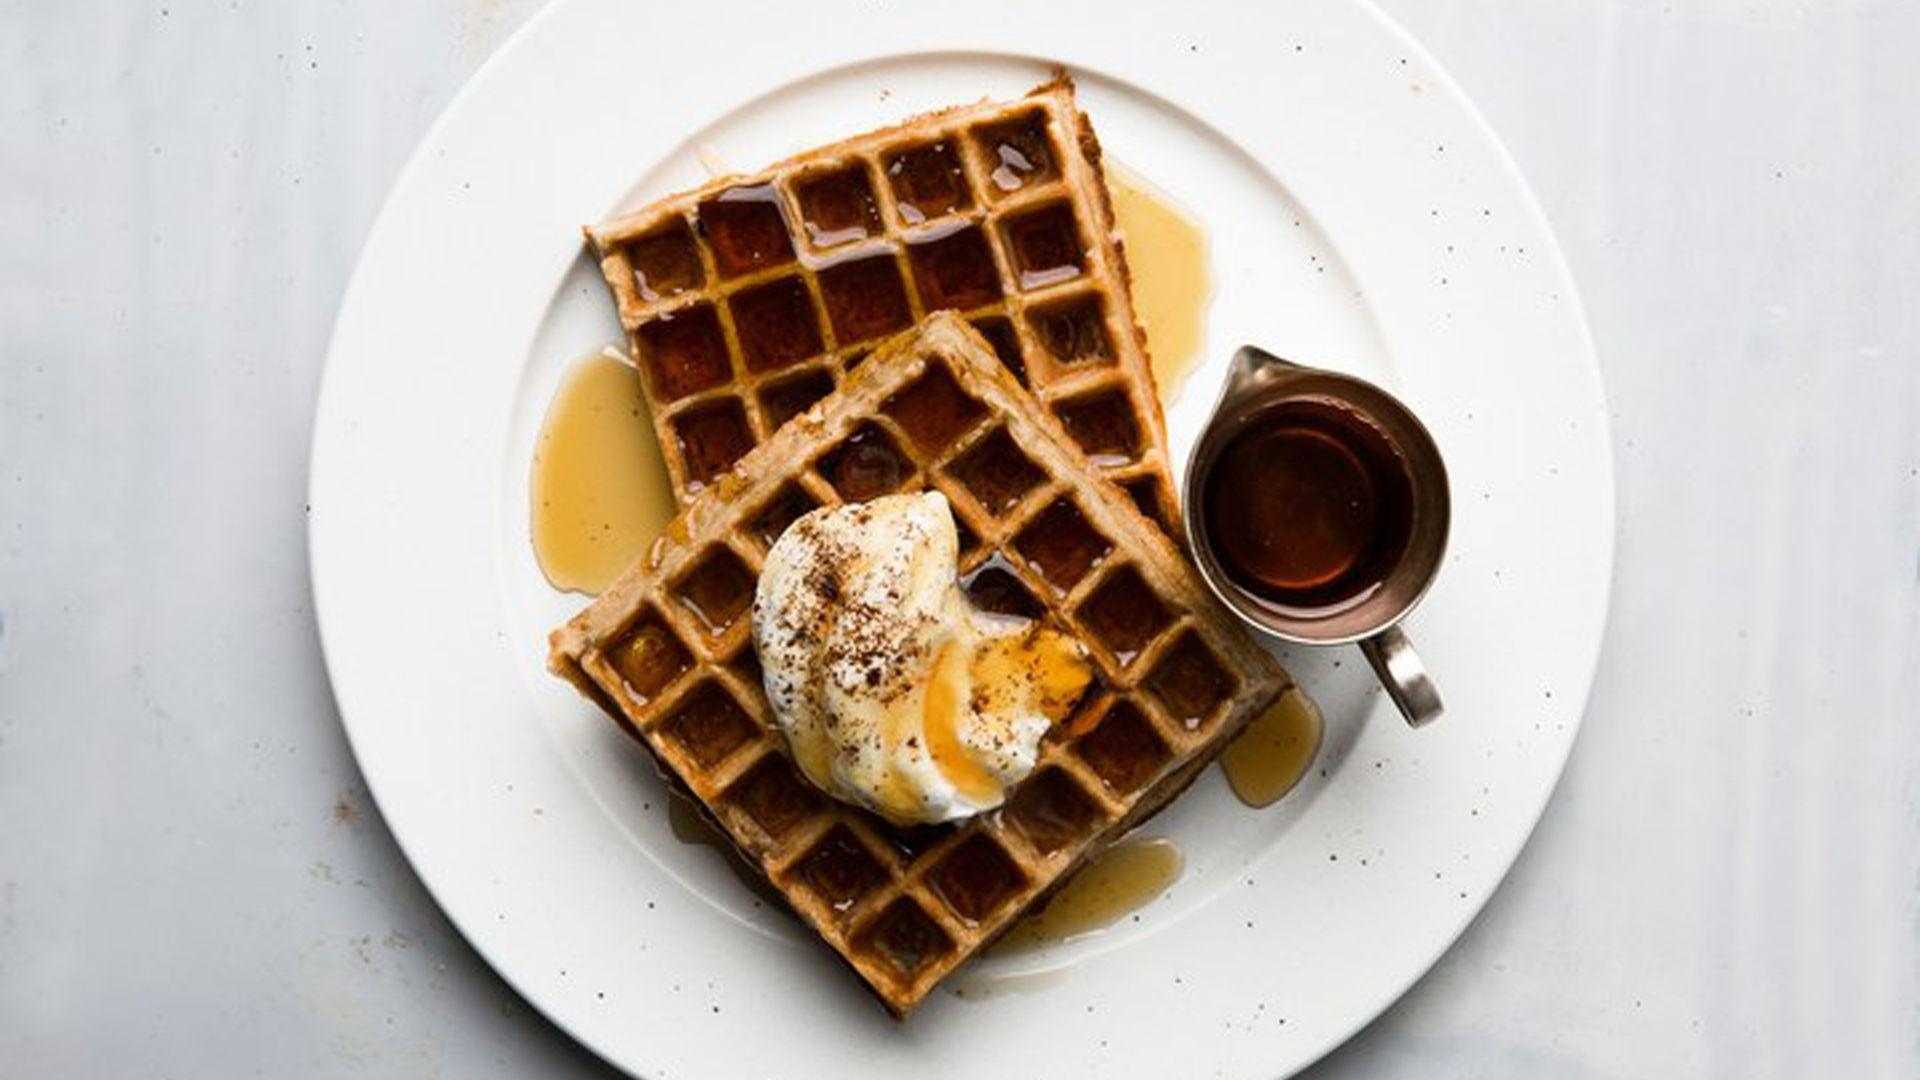 How To Whip Up Coffee-Flavored Belgian Waffles With Kick